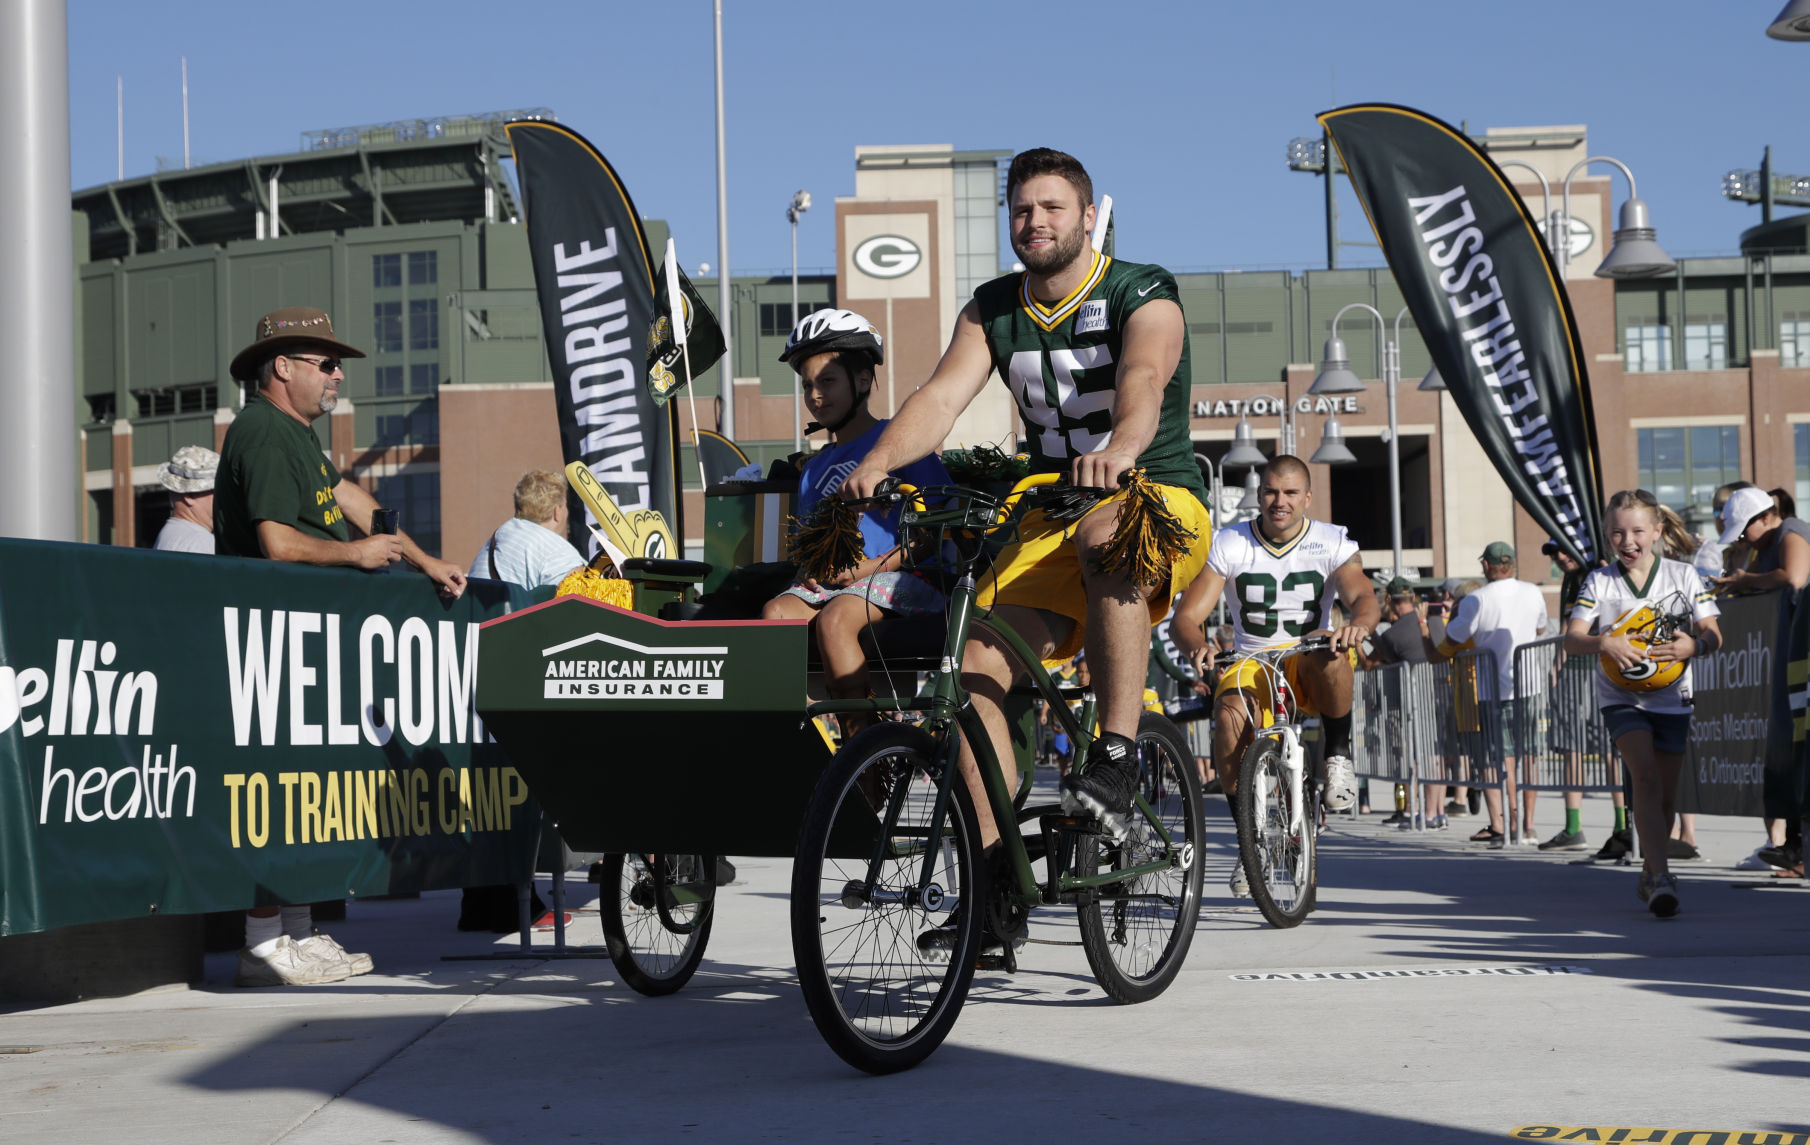 Packers vs. Cancer campaign